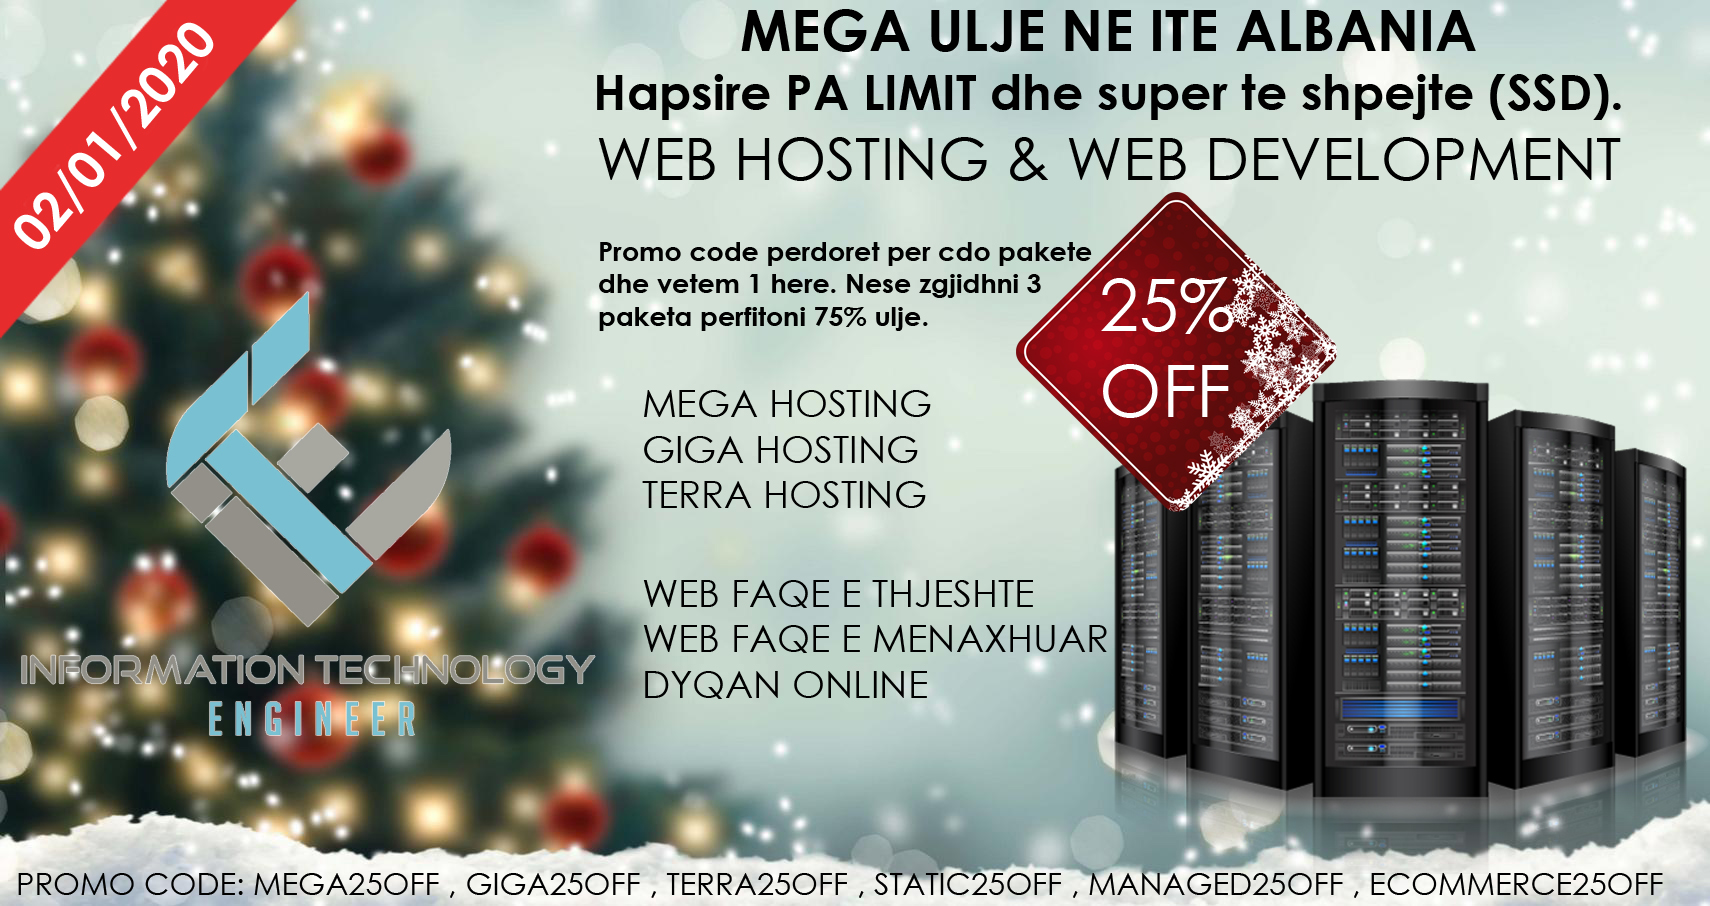 MEGA ULJE NE ITE ALBANIA - ITE Albania Ltd. | .AL Domain Registration, Web Hosting & Web Development